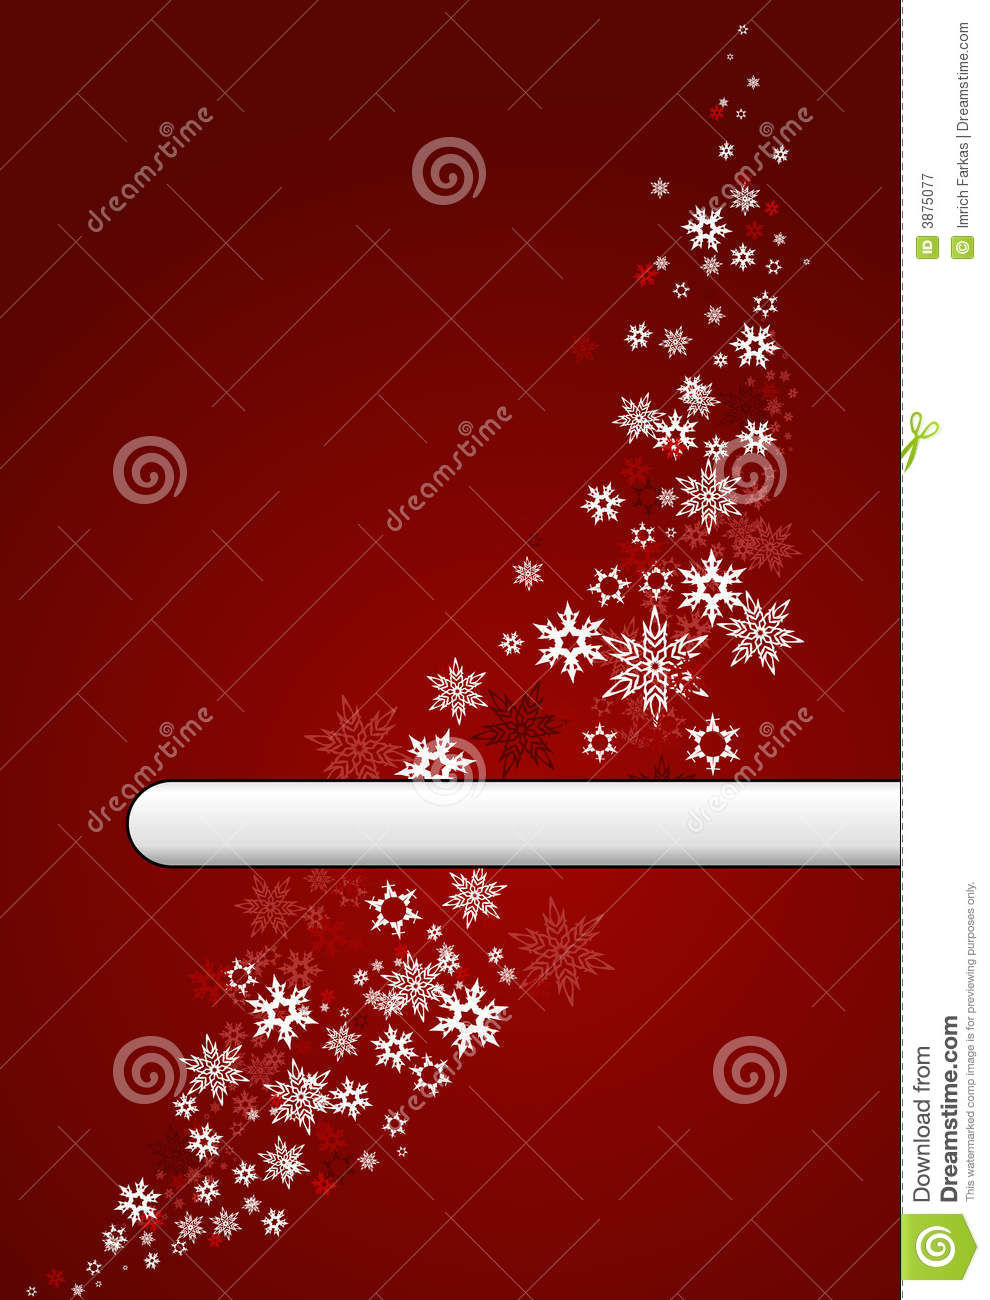 abstract winter background free - photo #39